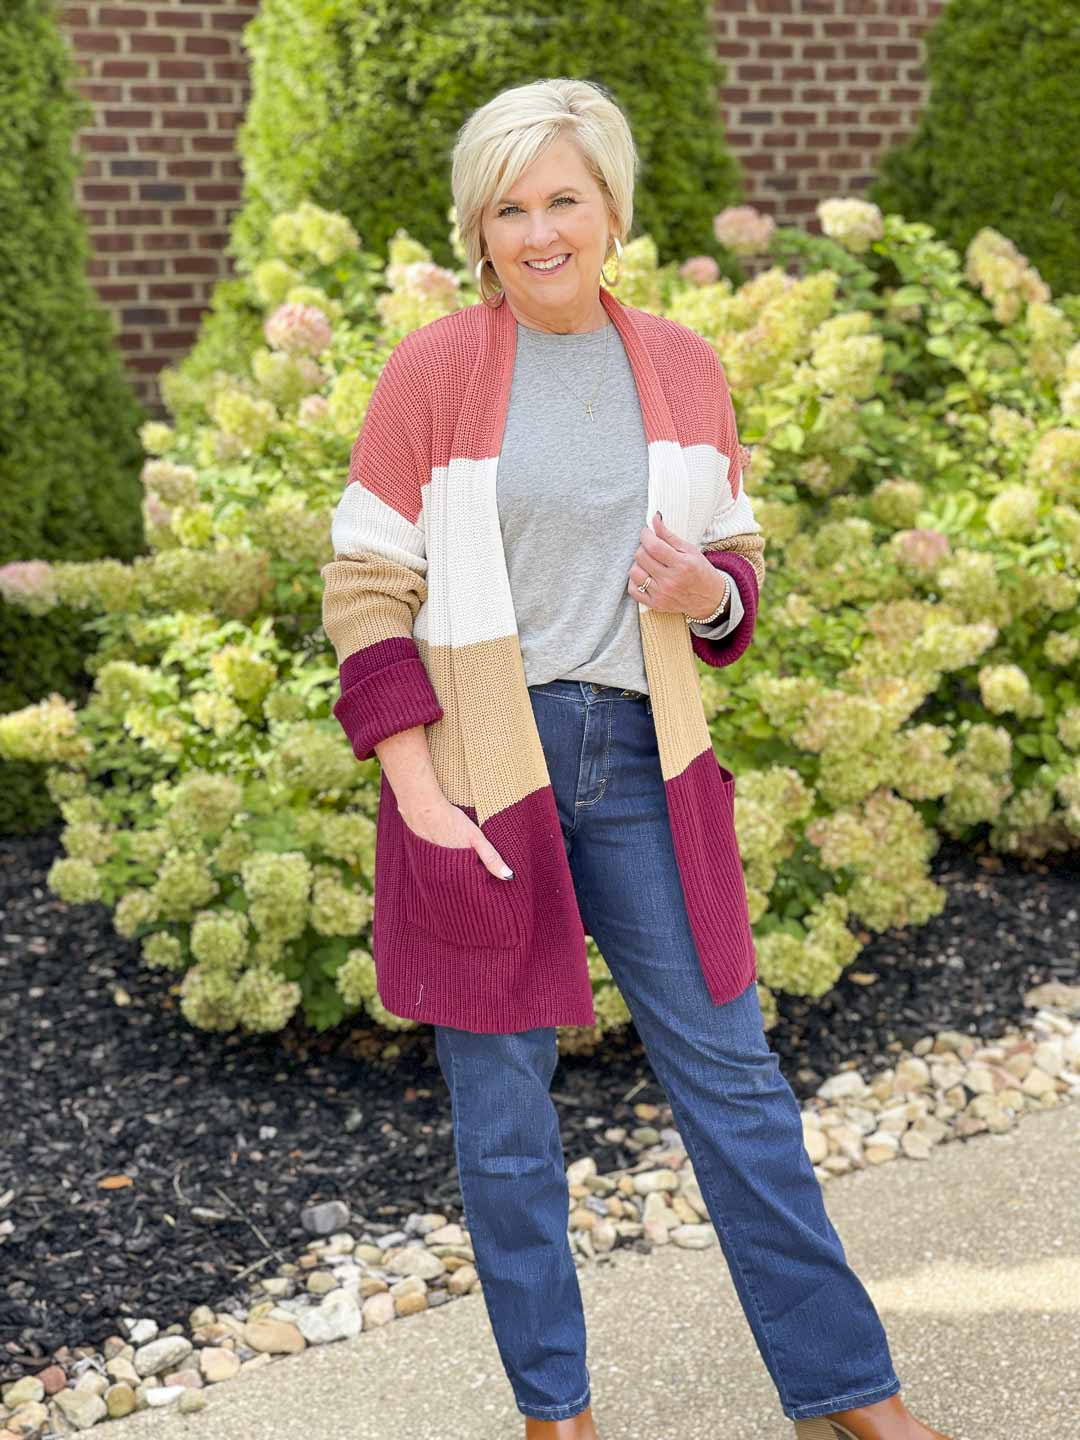 Over 40 Fashion Blogger, Tania Stephens, is showing her recent Walmart haul including this color blocked cardigan and gray tee